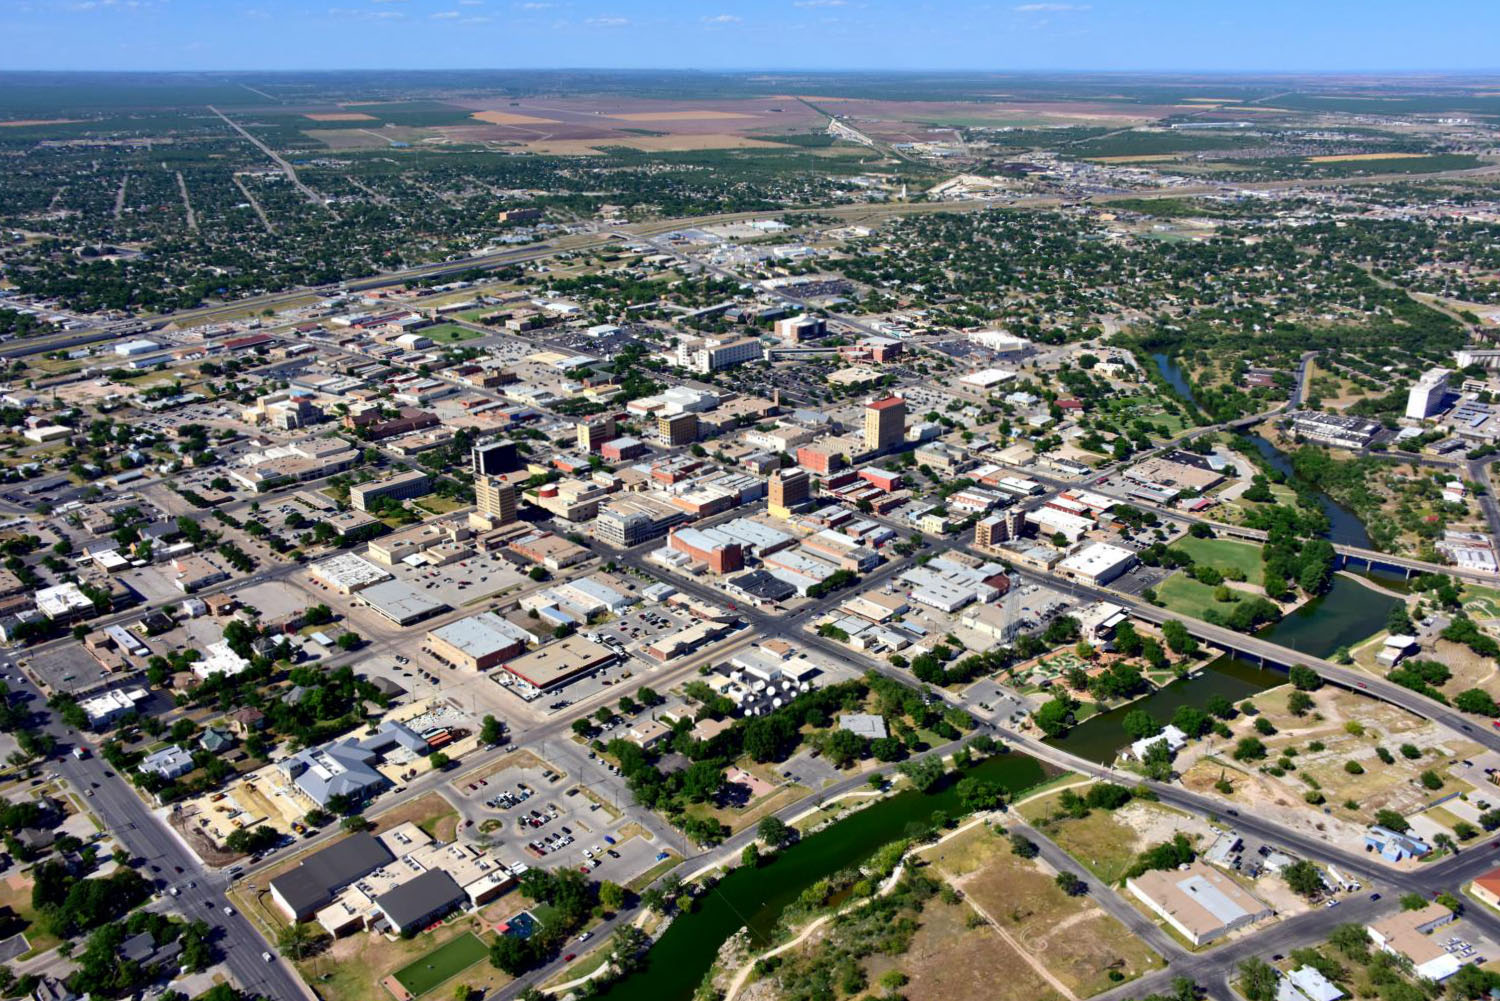 Downtown CBD - San Angelo Aerial Photographer - Aerial Drone Image - Aerial Drone Video - San Angelo, TX - West Texas